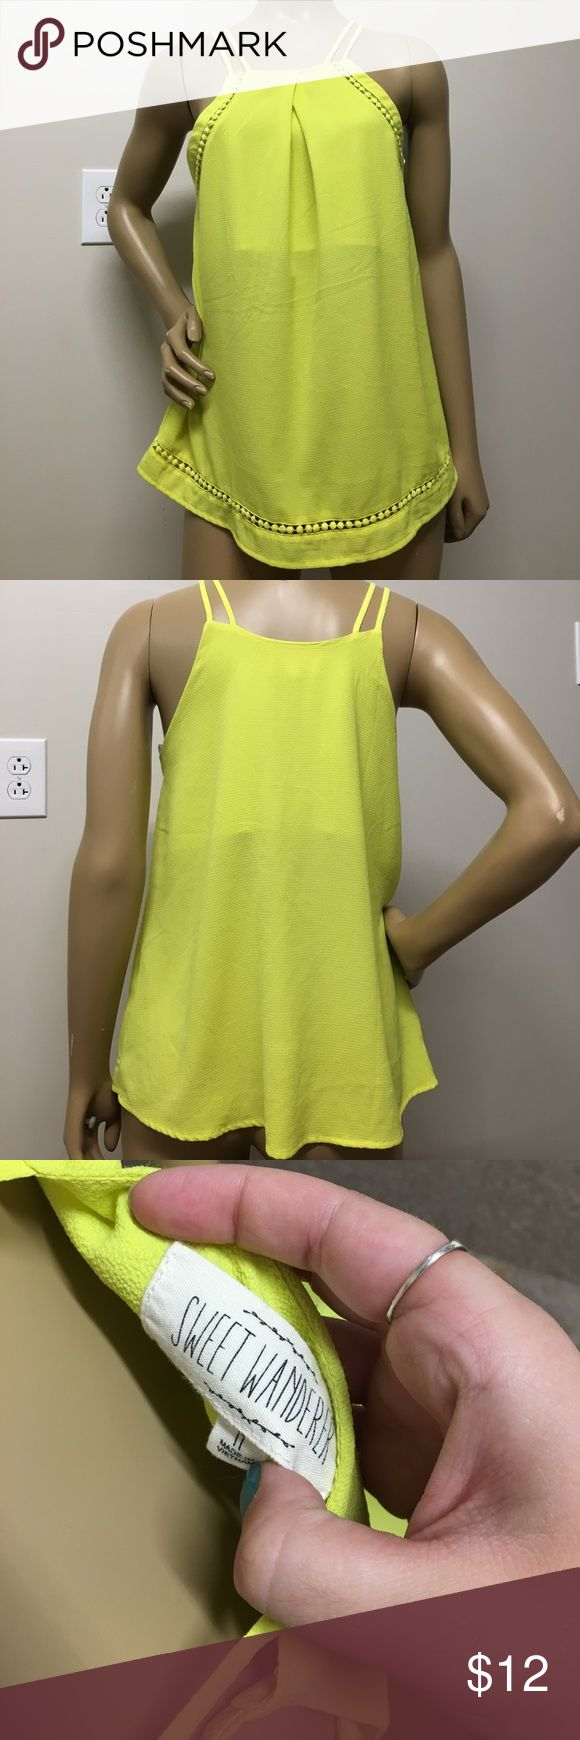 Yellow Tank Top Unique design with cute details. Lightly worn. Shows minimal wear Urban Outfitters Tops Tank Tops